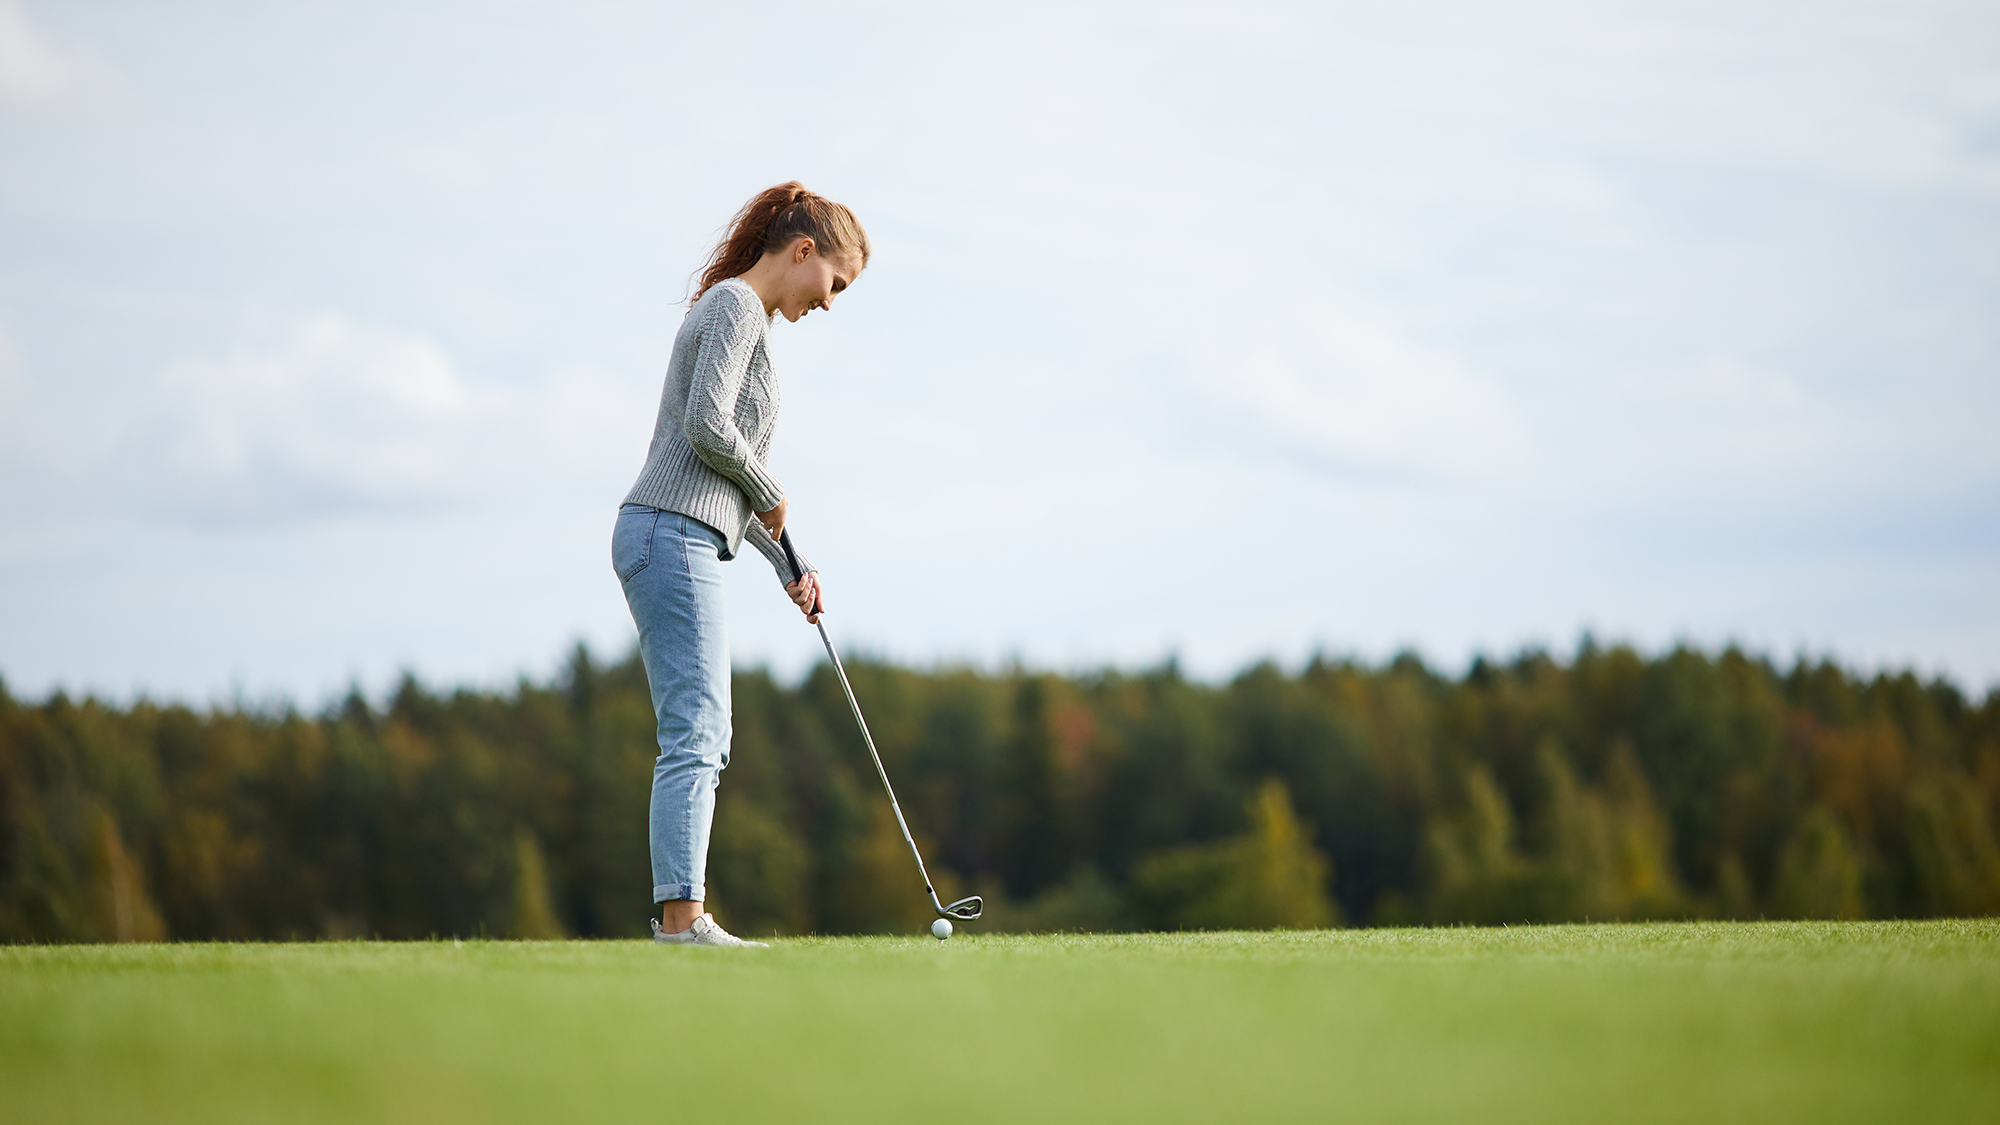 Young active woman in casualwear standing on golf field and getting ready to hit ball with club